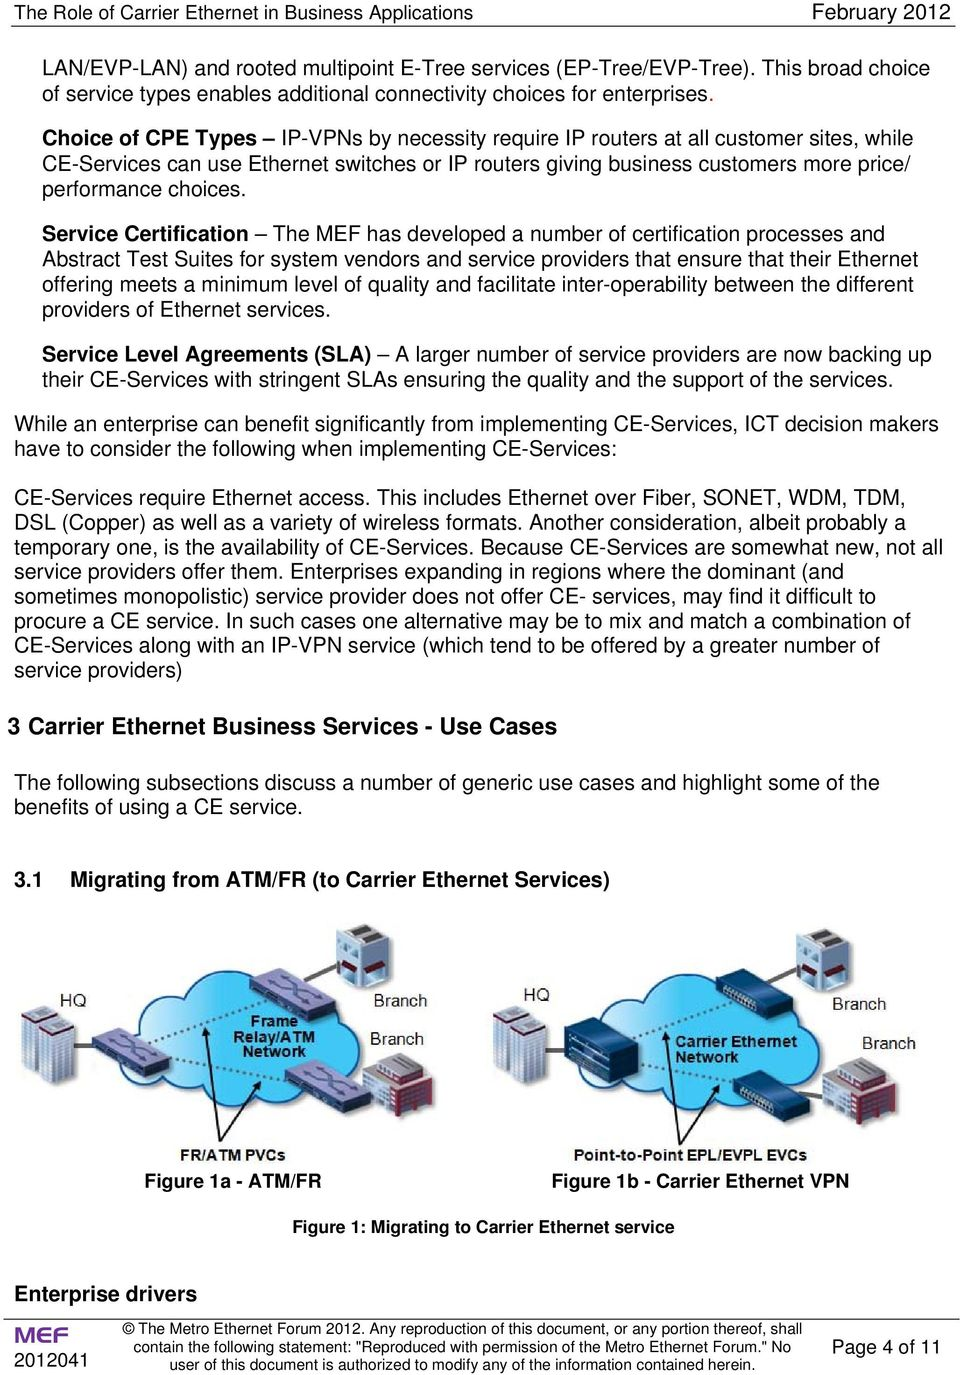 Service Certification The has developed a number of certification processes and Abstract Test Suites for system vendors and service providers that ensure that their Ethernet offering meets a minimum